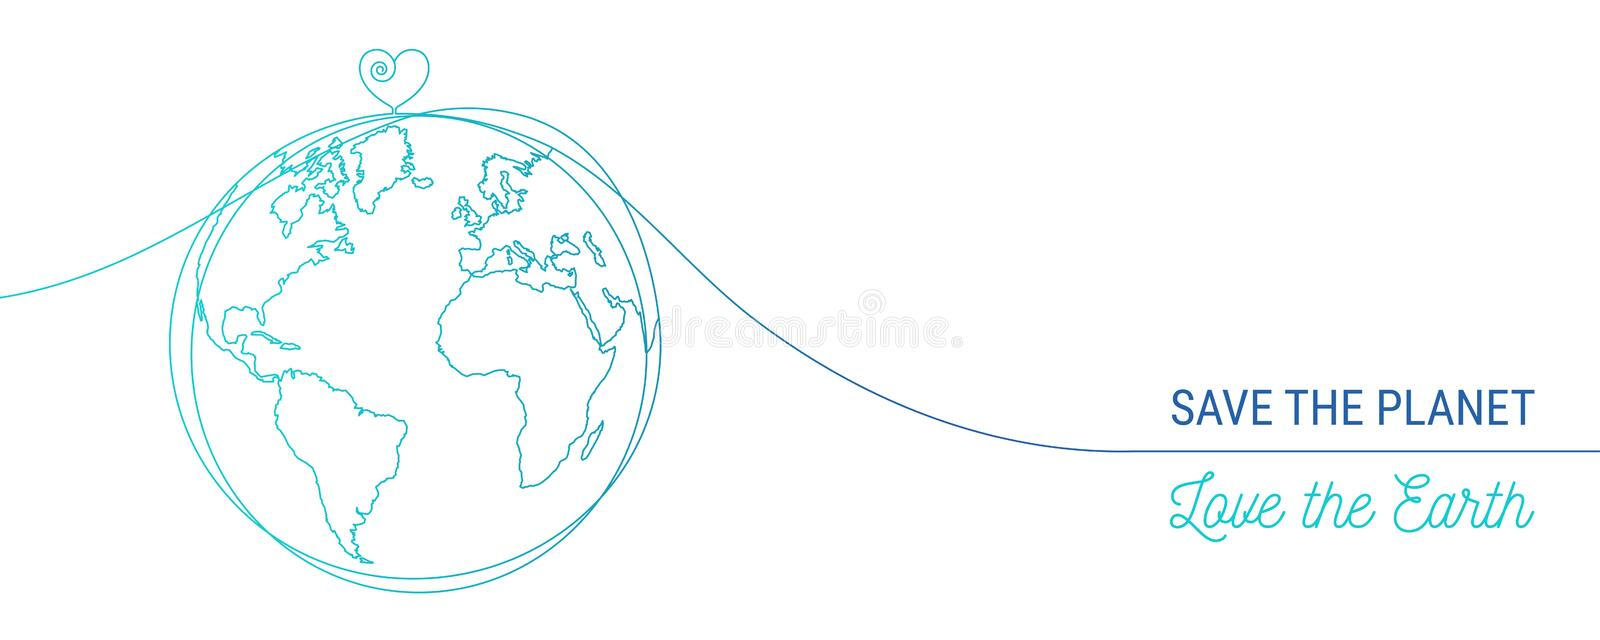 Hand drawn save the world concept vector illustration